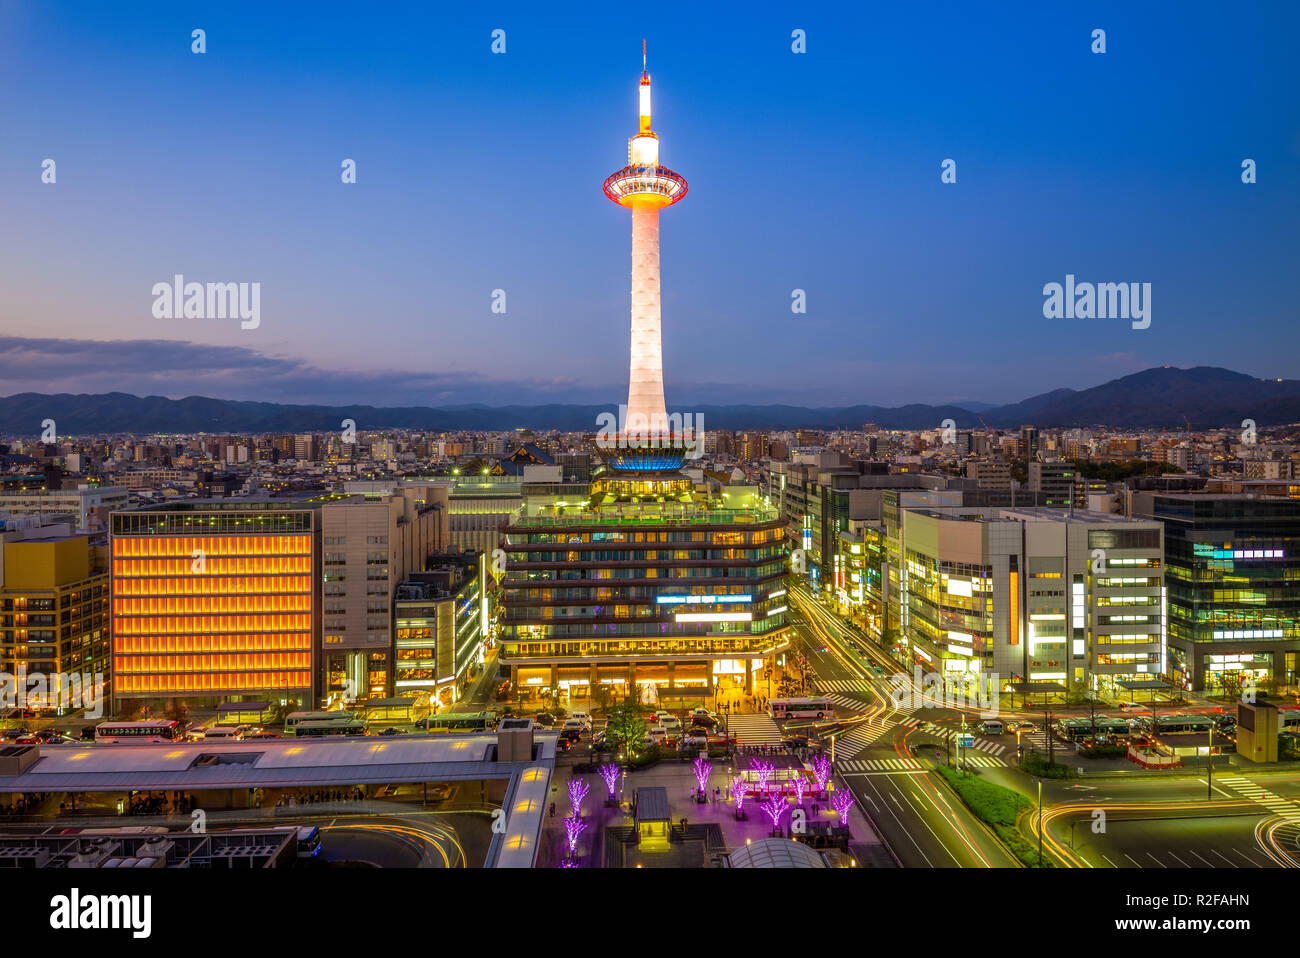 night view of the skyline of  kyoto, japan - Stock Image